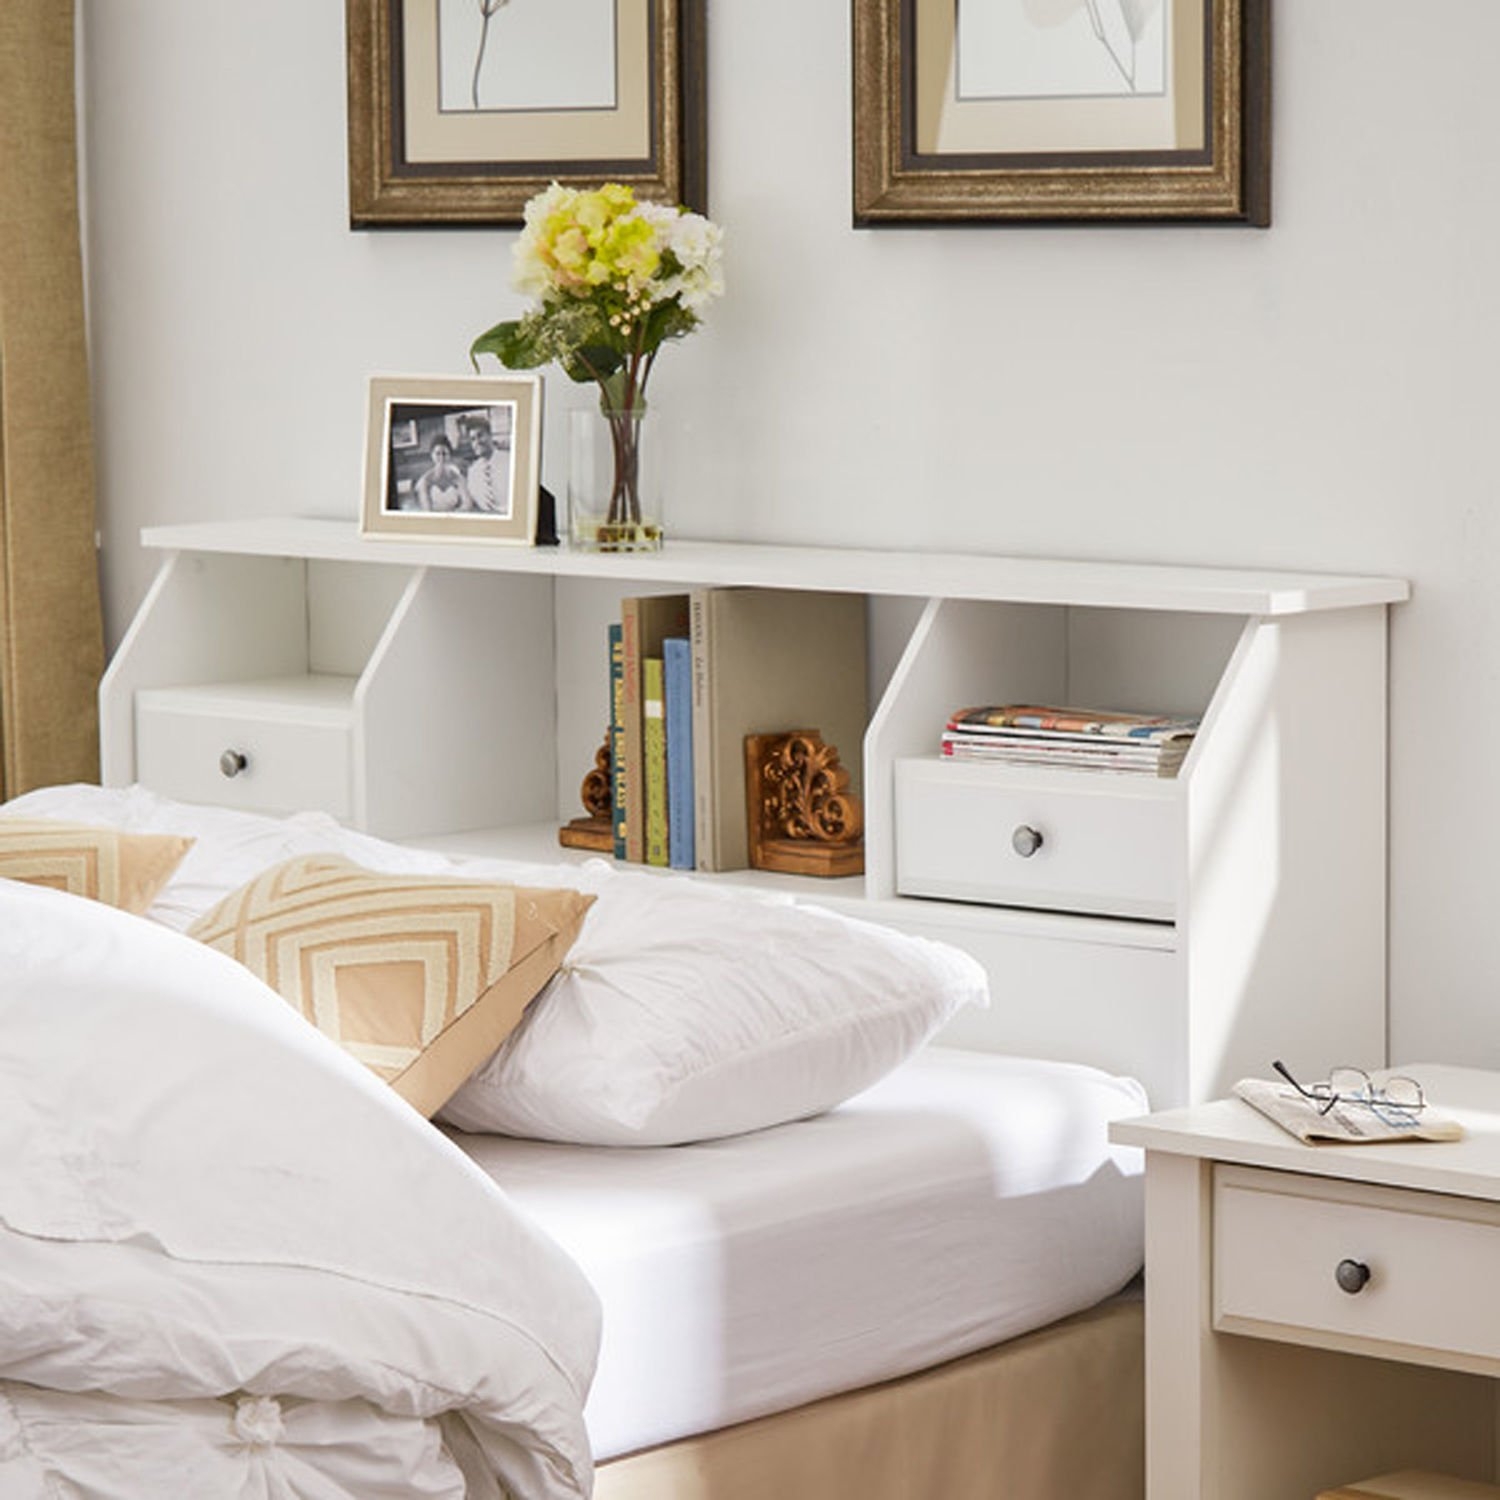 Headboard with Storage Queen / Full Size Bookcase Drawers Wood White Shelves Modern Bedroom Headboard by Revere (Image #1)